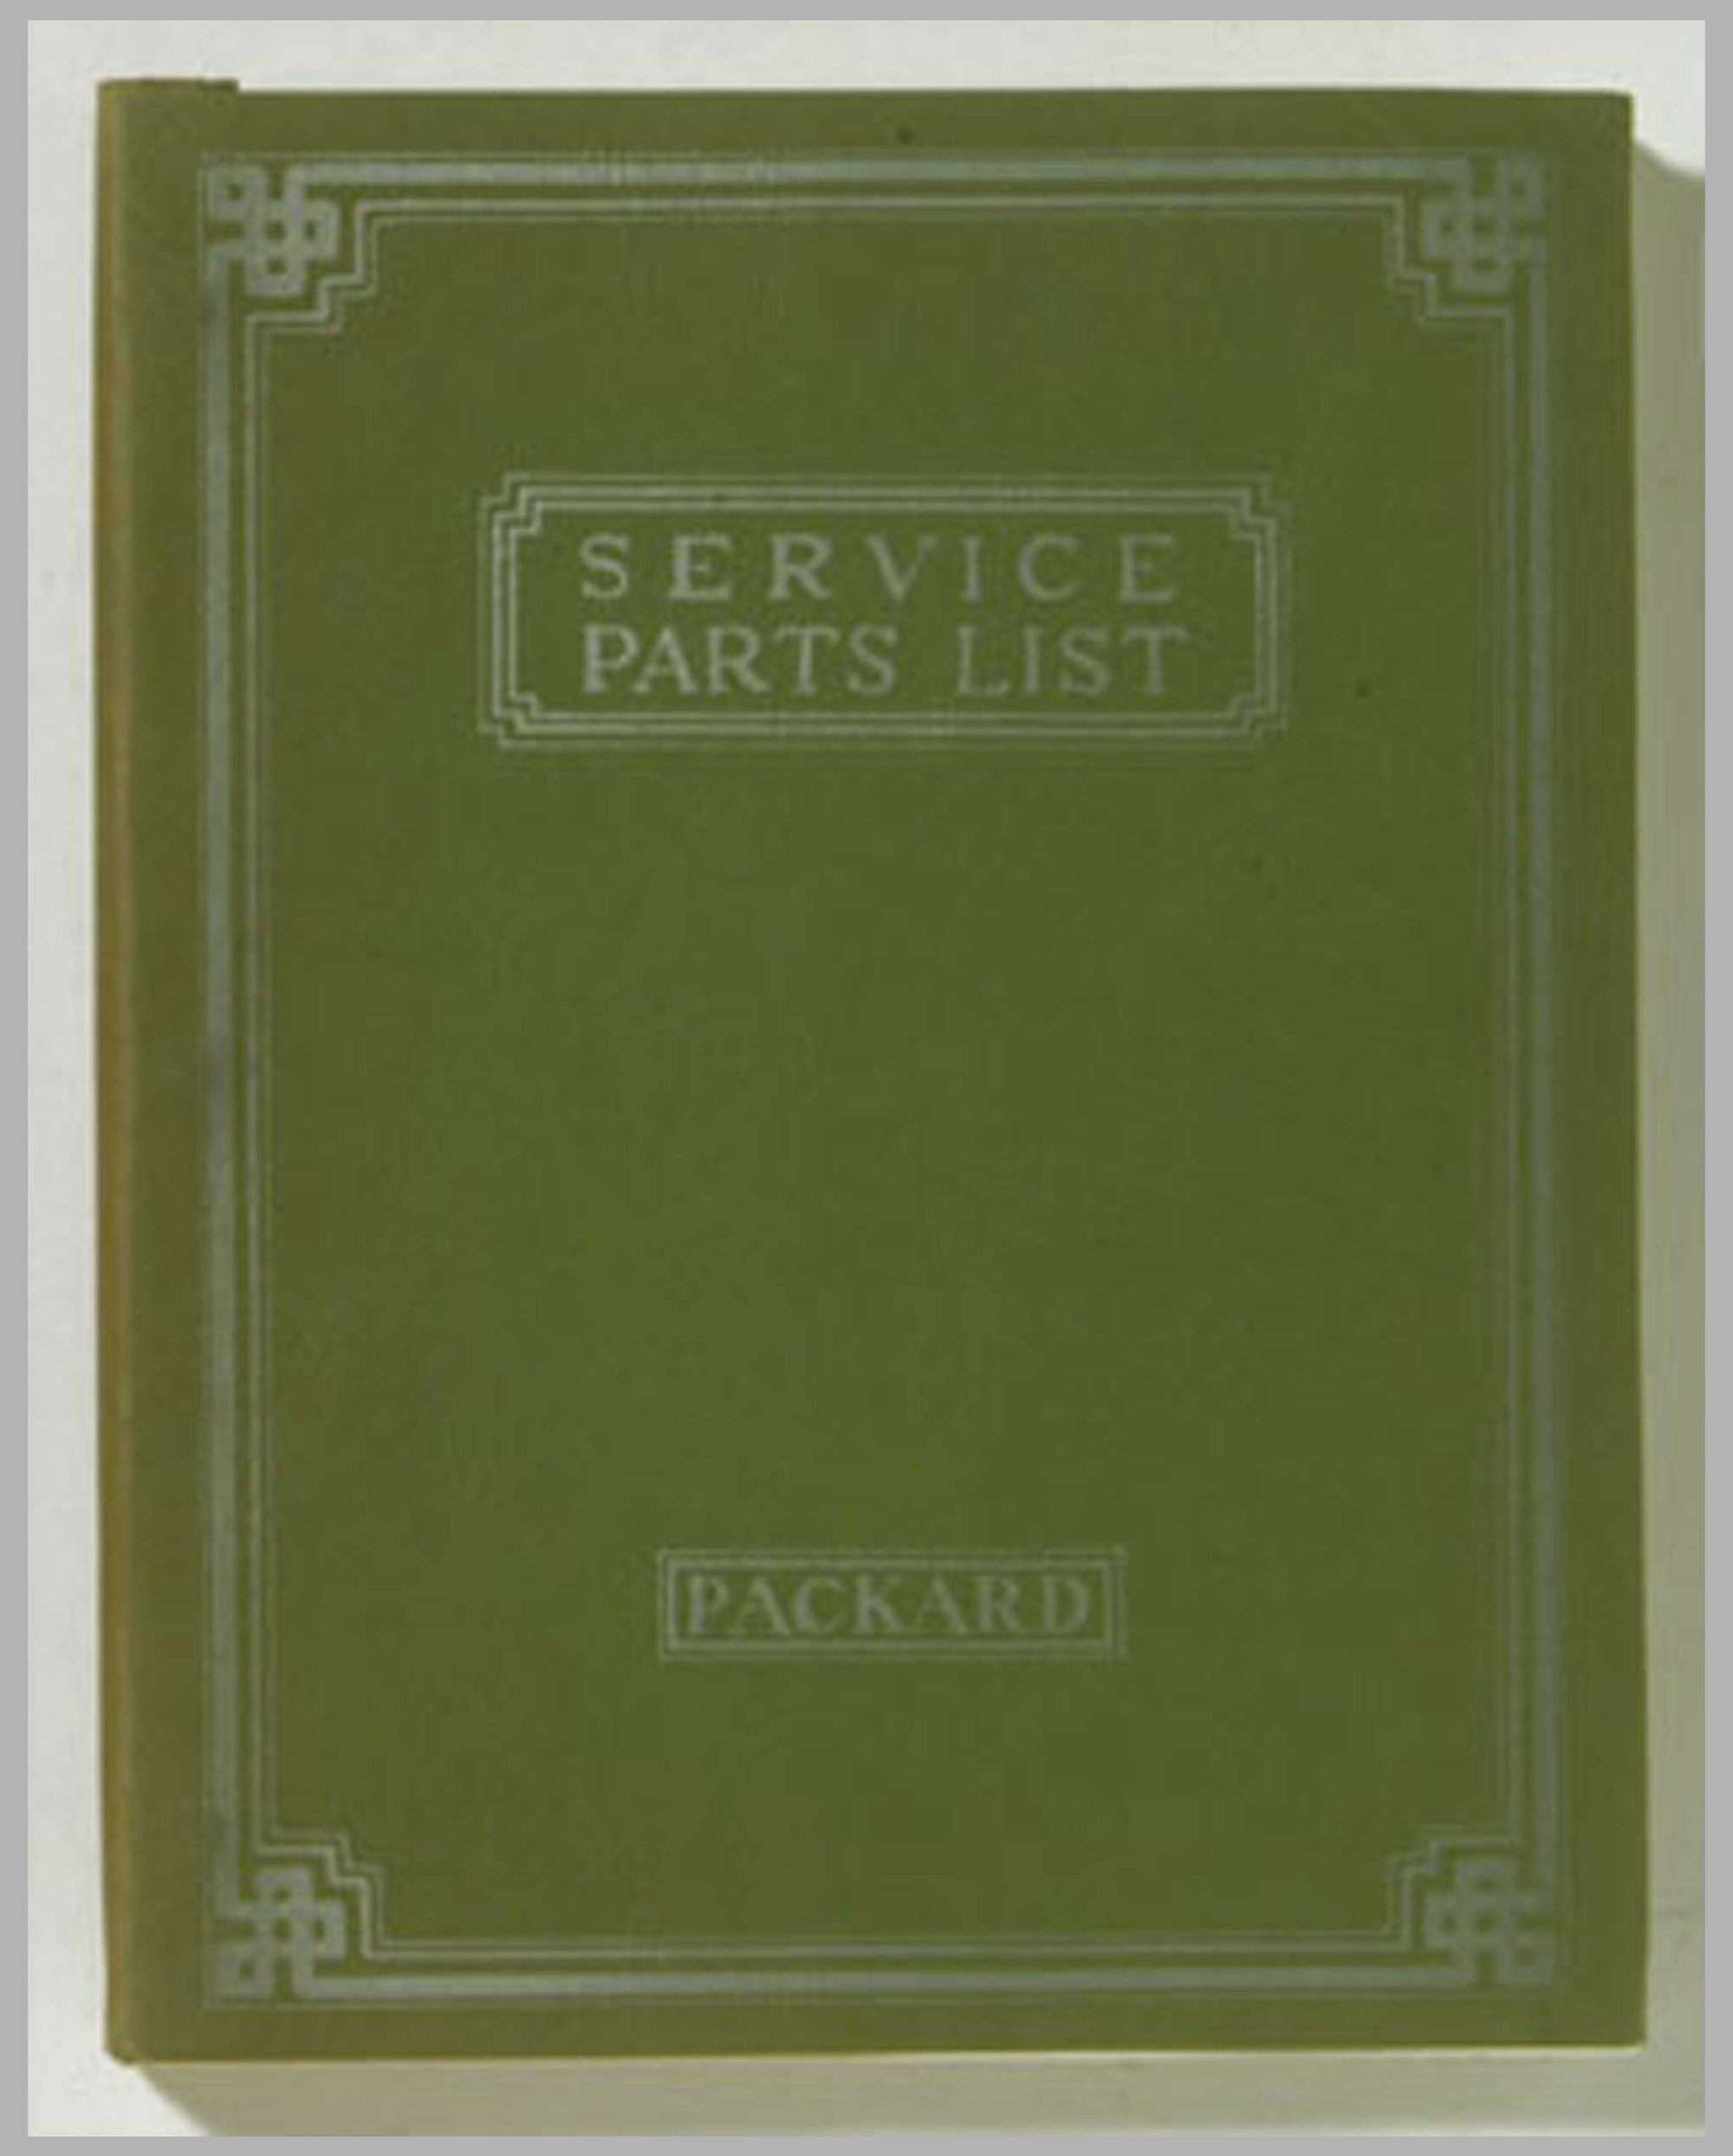 1931 Packard Service Parts List reprint